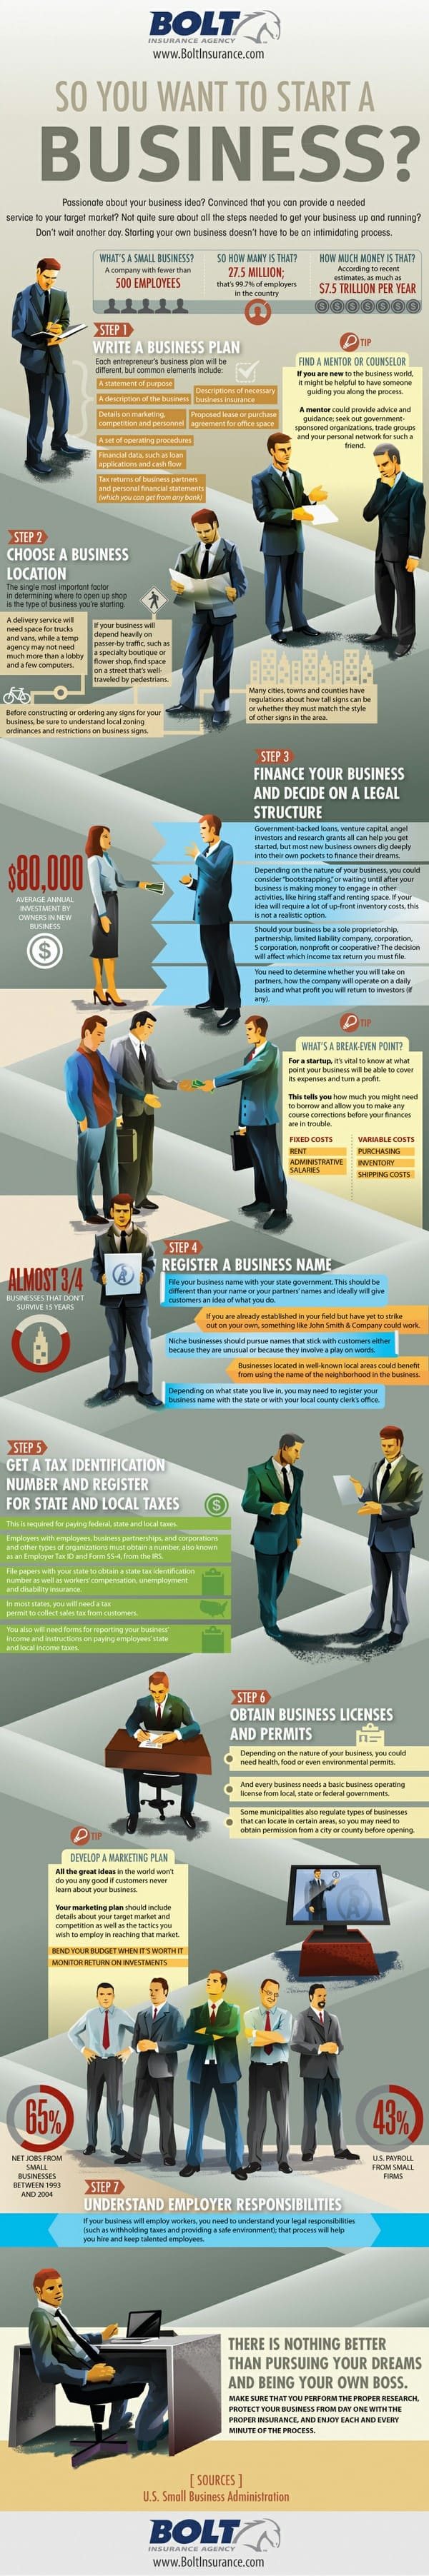 The How To Start A Business Infographic